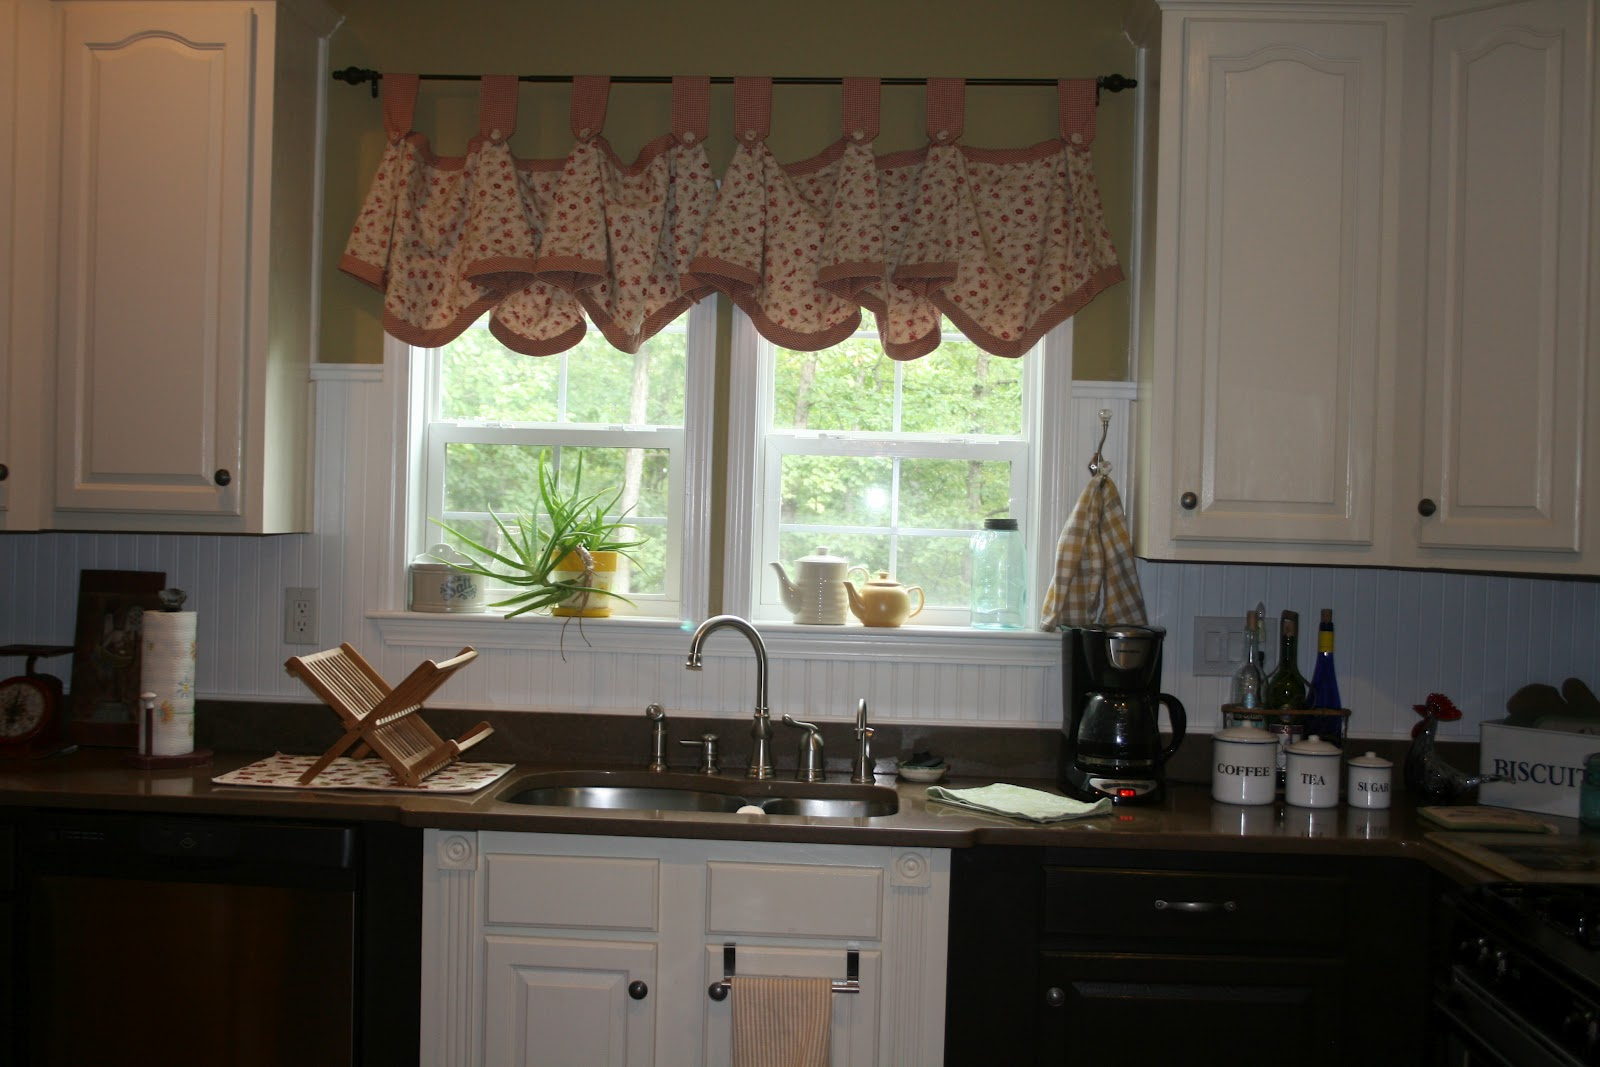 The Old Cupboard Door: Kitch, Kitch